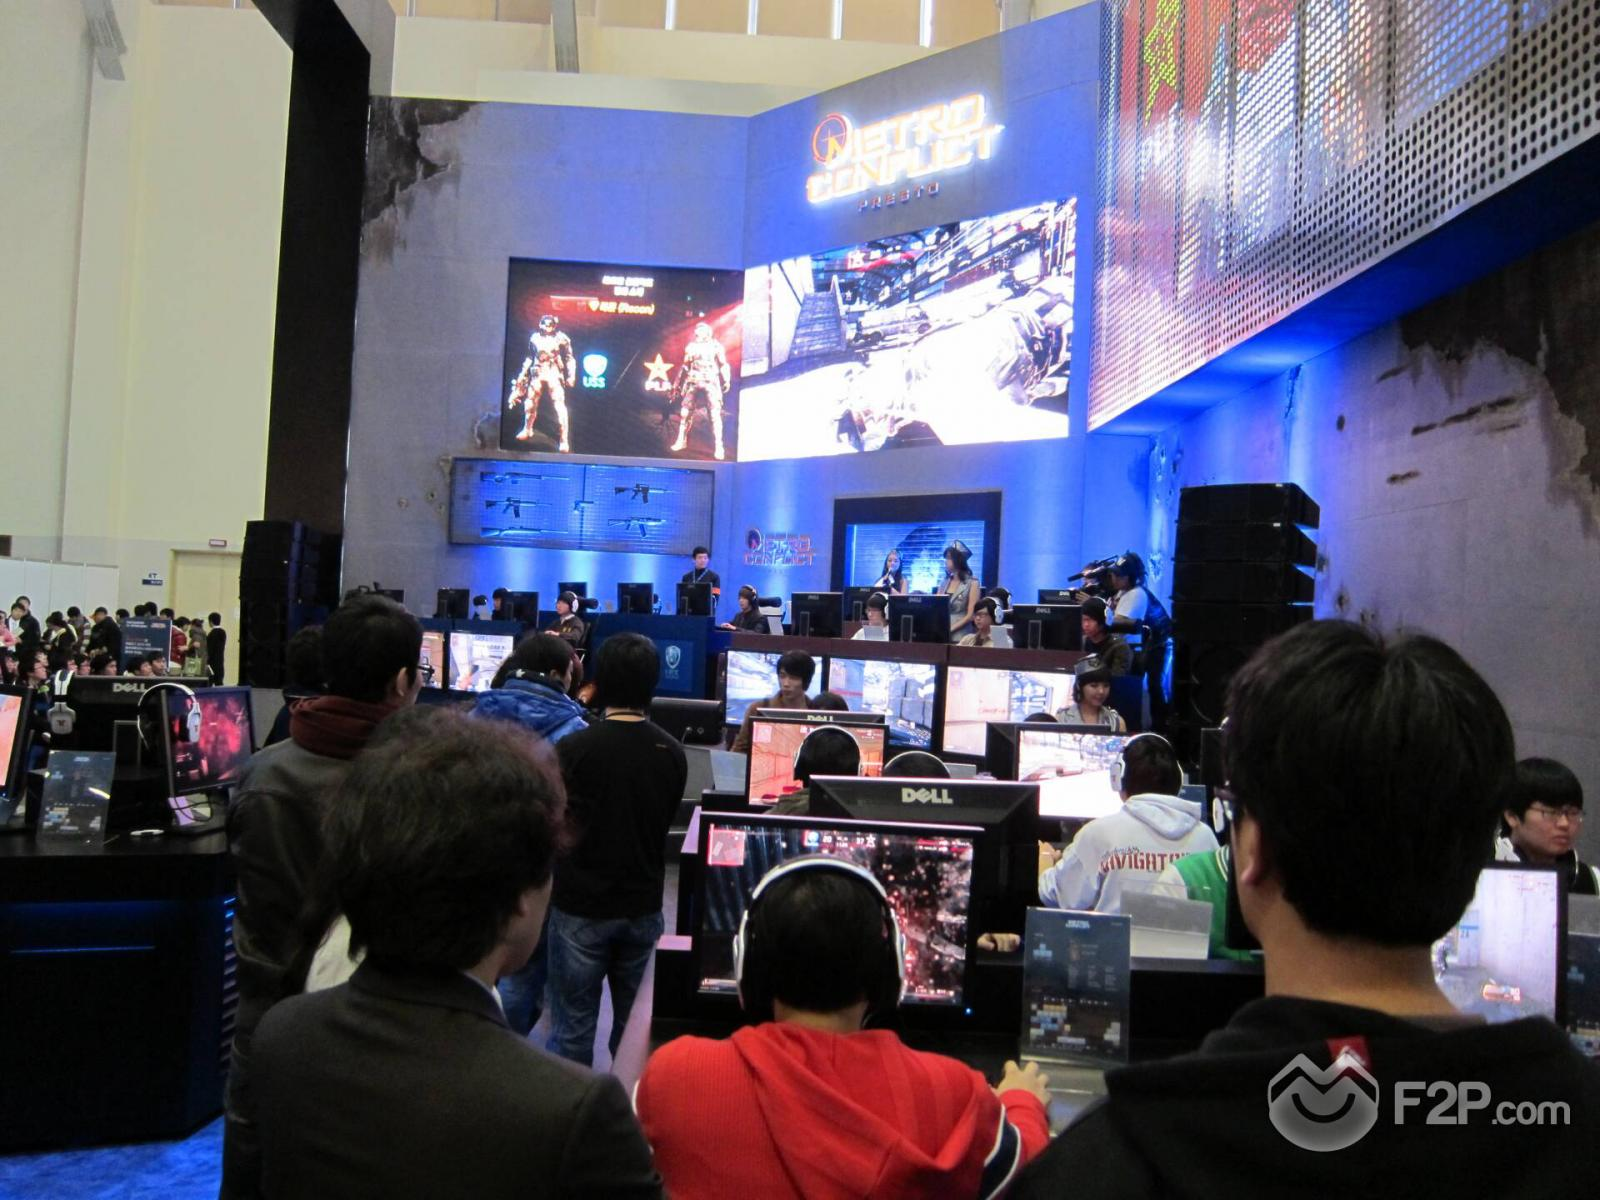 Click image for larger version.Name:G-Star 2010 F2P second day 10.jpgViews:53Size:215.8 KBID:2088